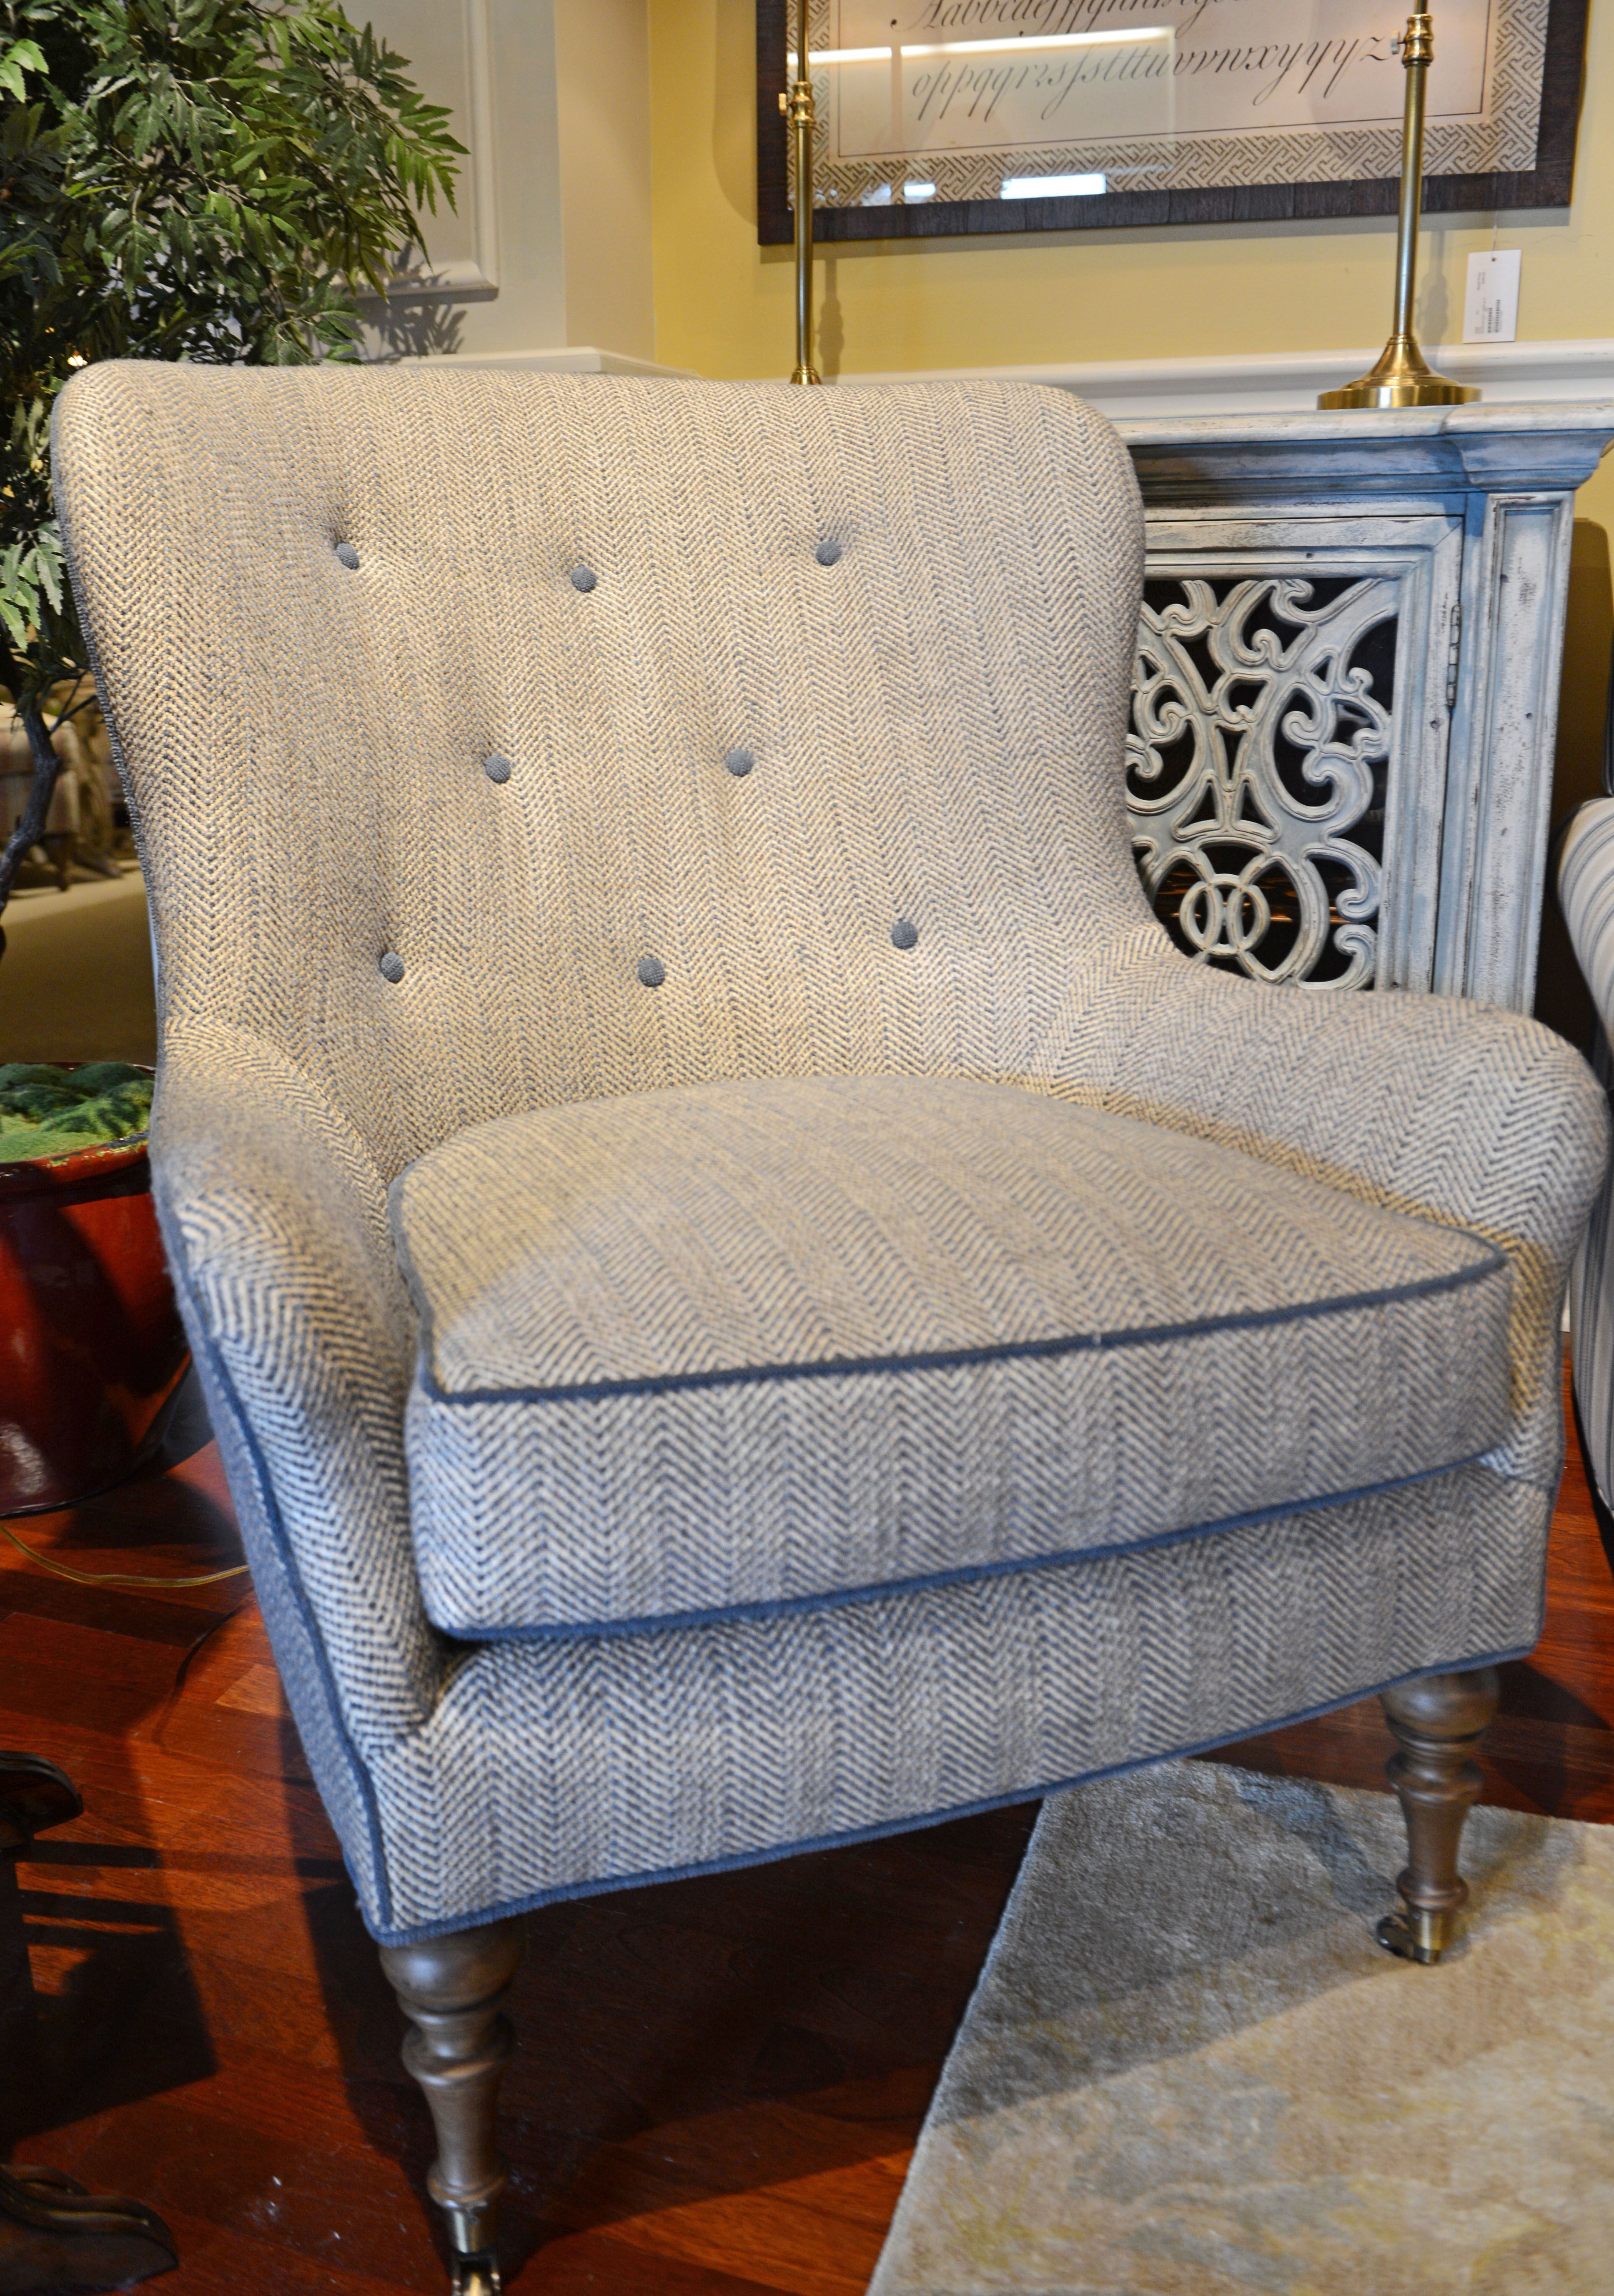 Menswear Patterns Like Herringbone And Houndstooth As Upholstery Chair Available At Inter Ors Lancaster Pa Photo By Jeff Ruppen Furniture Chair Upholstery